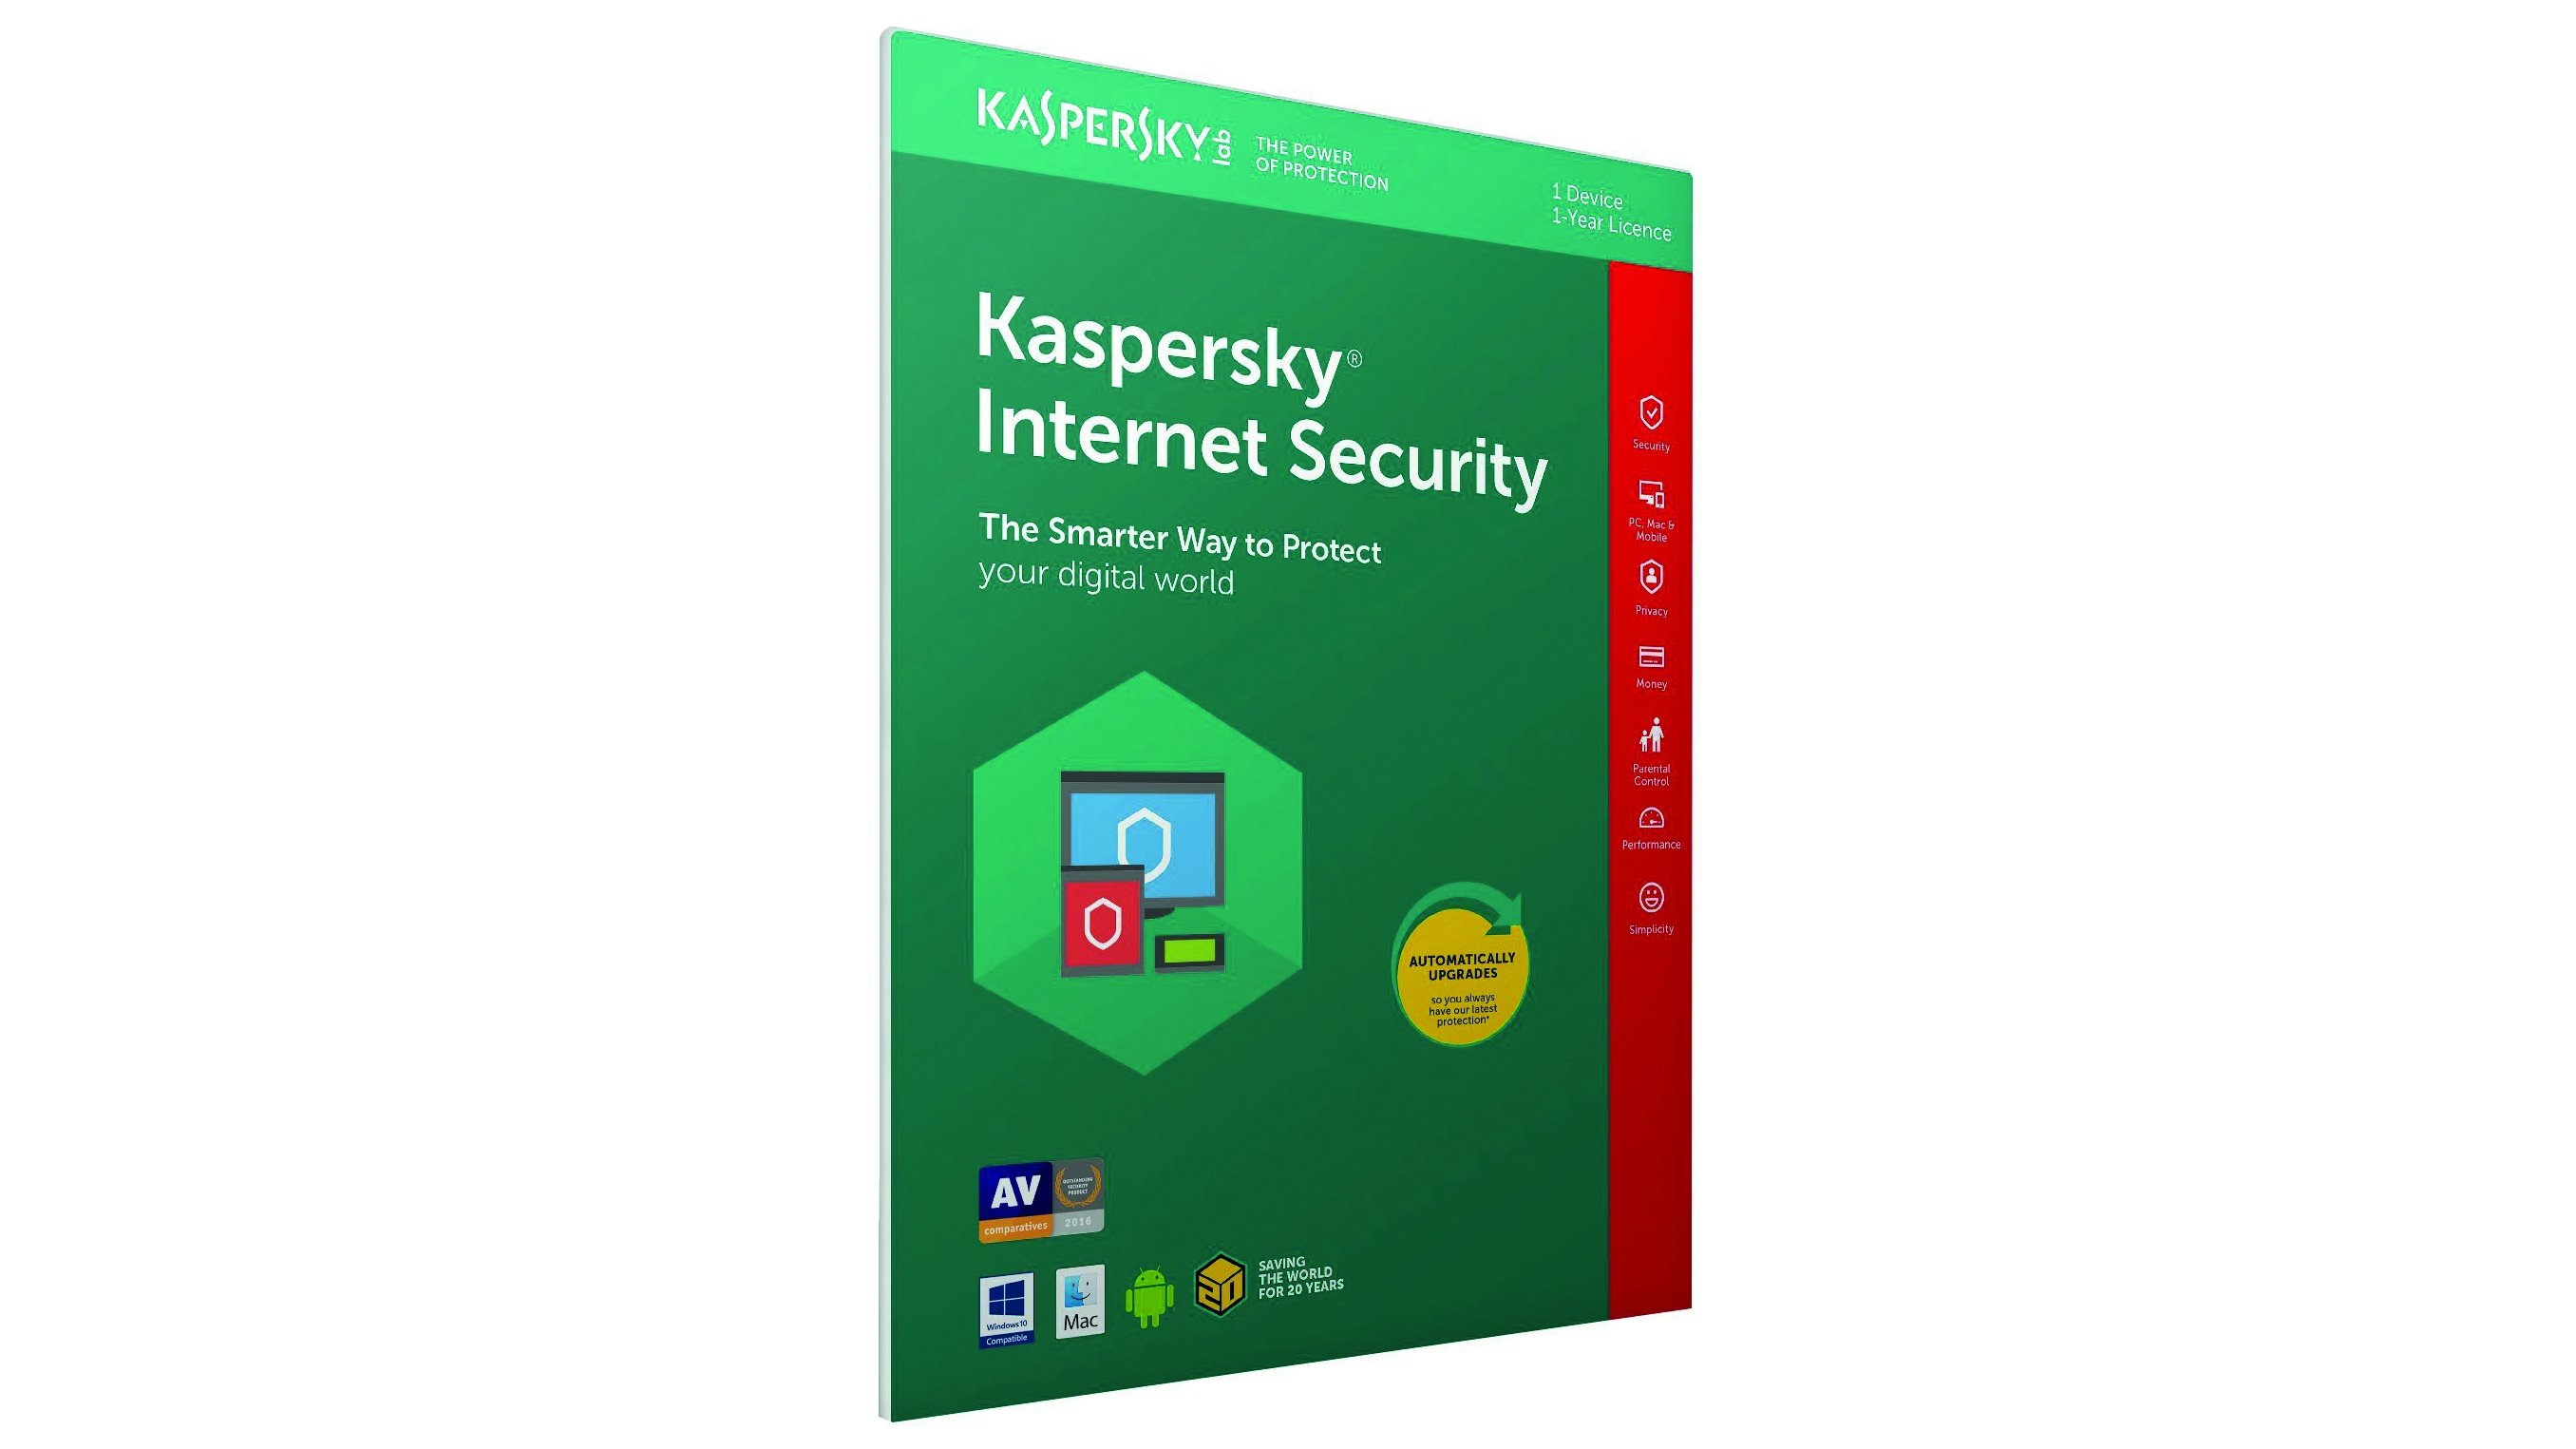 Kaspersky Internet Security 2019 review: The gold standard